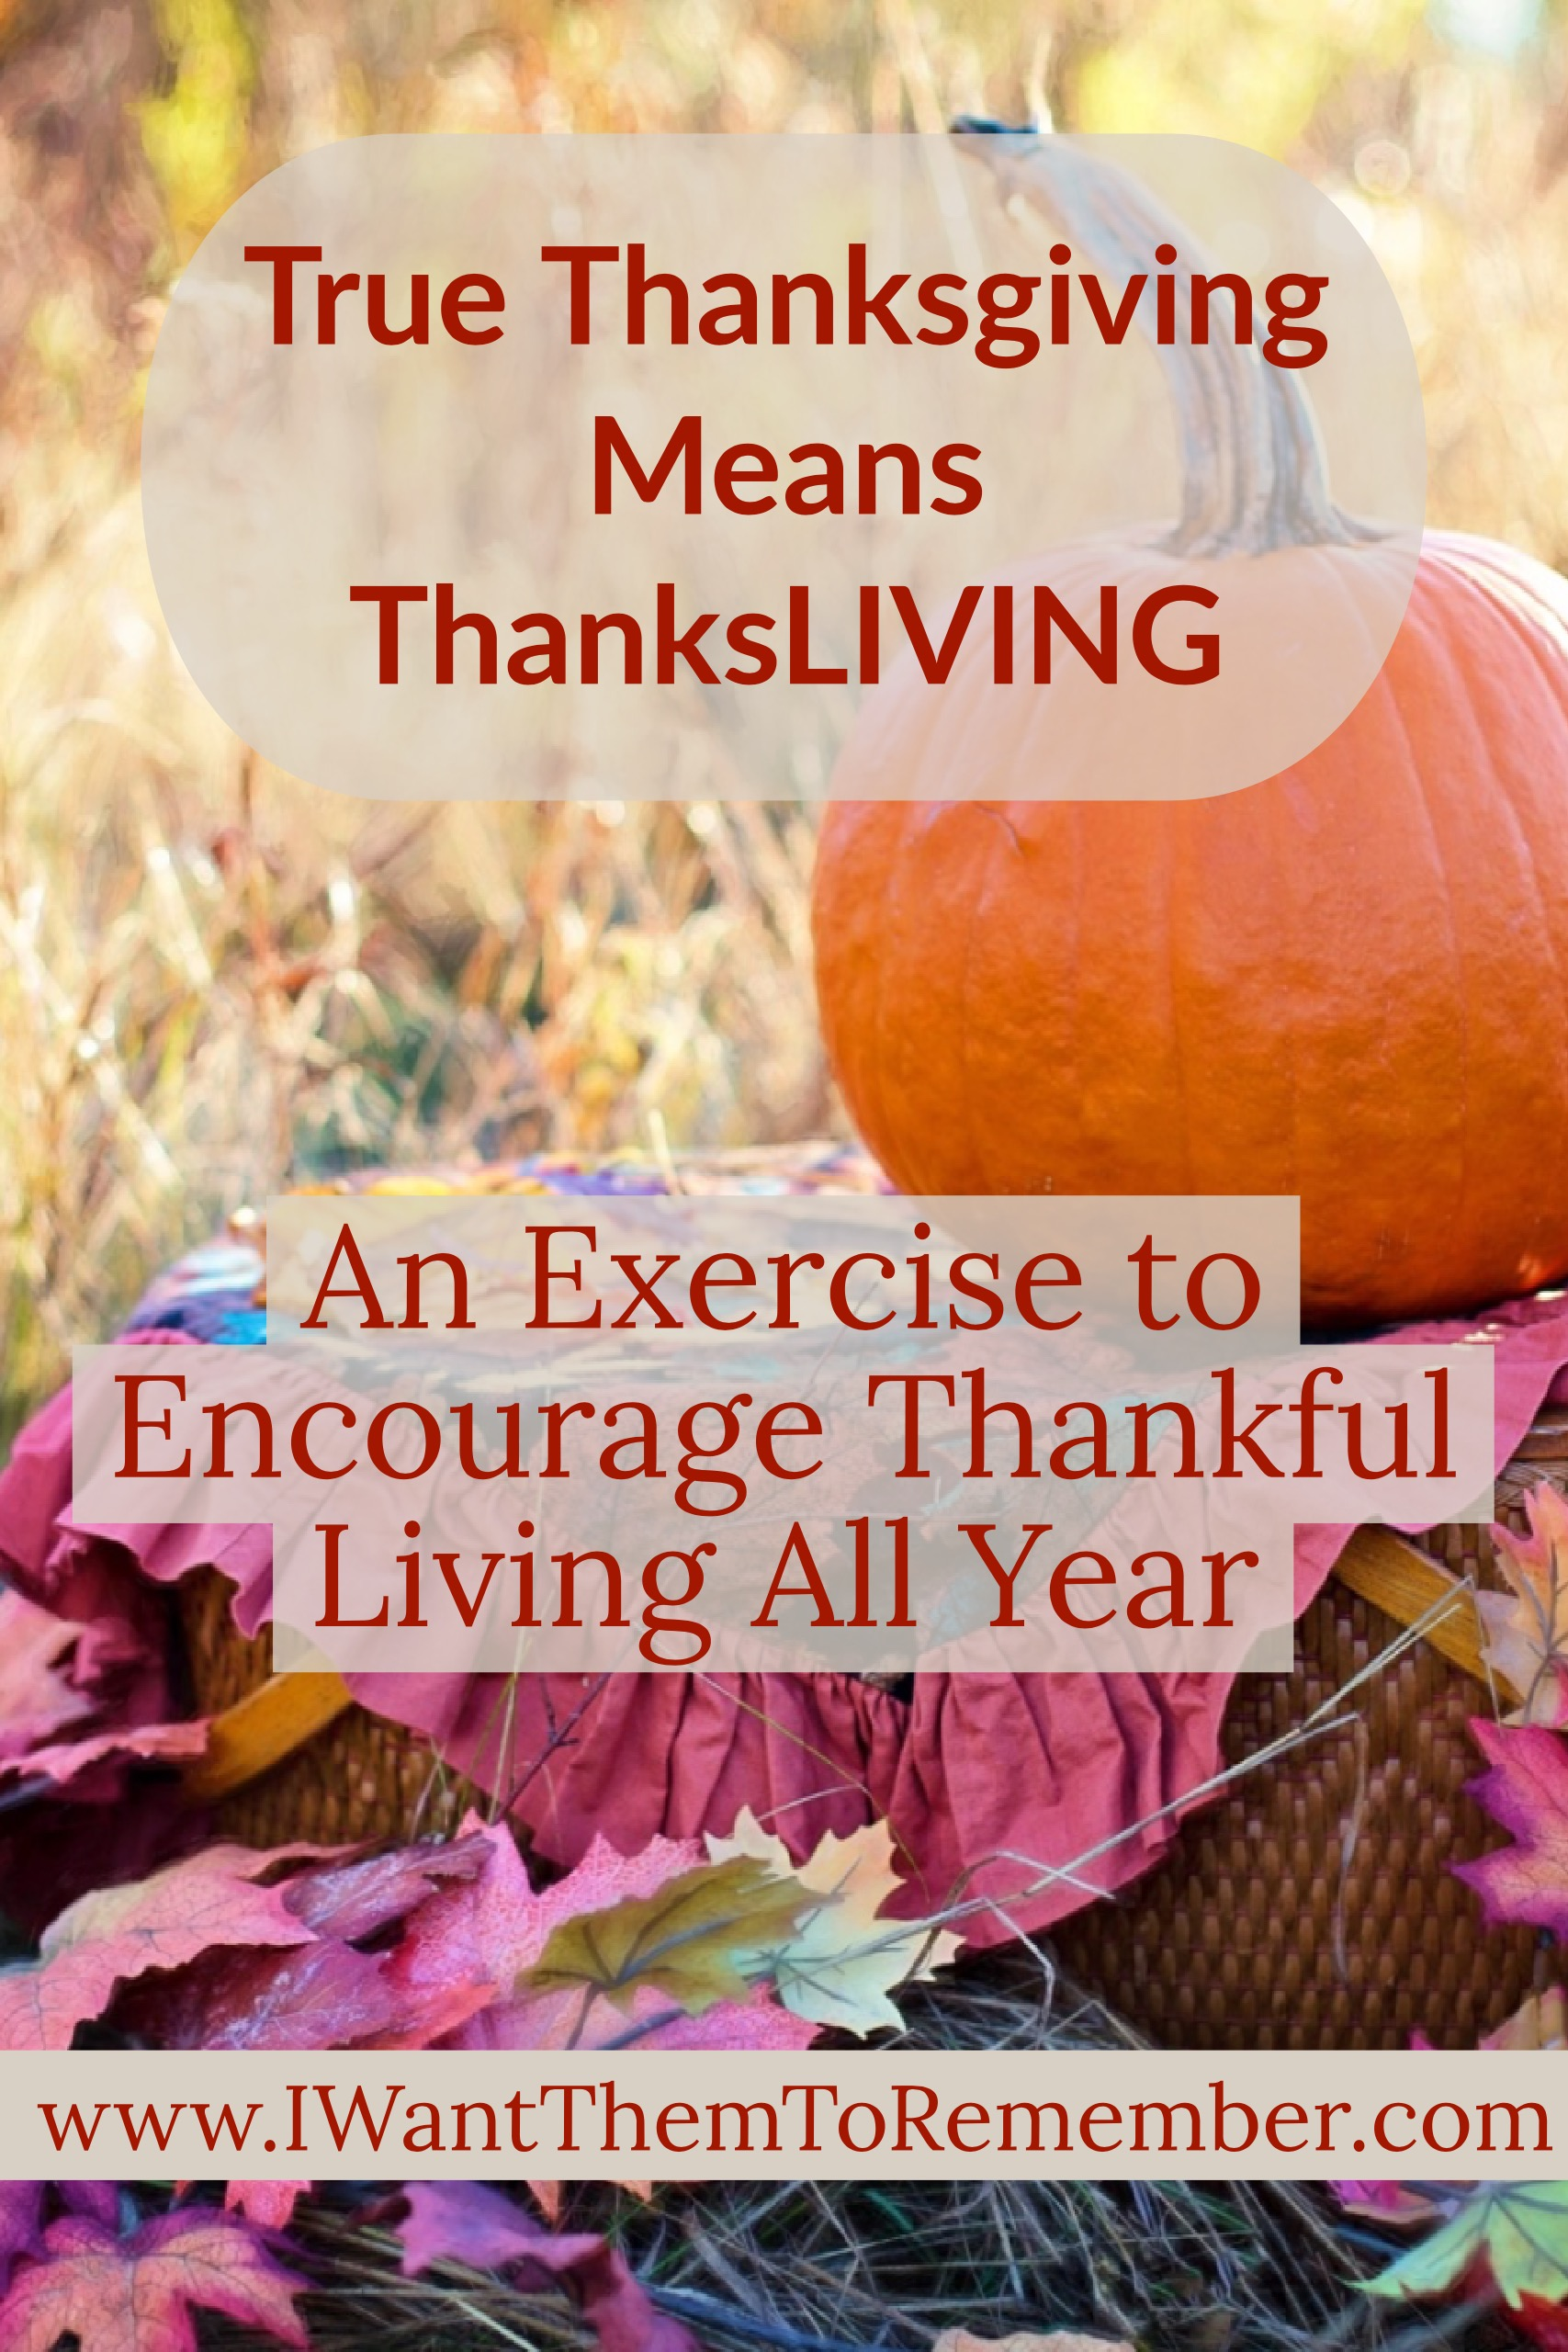 True Thanksgiving is not centered around a month of the year or a holiday season. It does not depend on good food and family gatherings. True Thanksgiving is an attitude of the heart that we express all year through ThanksLIVING.